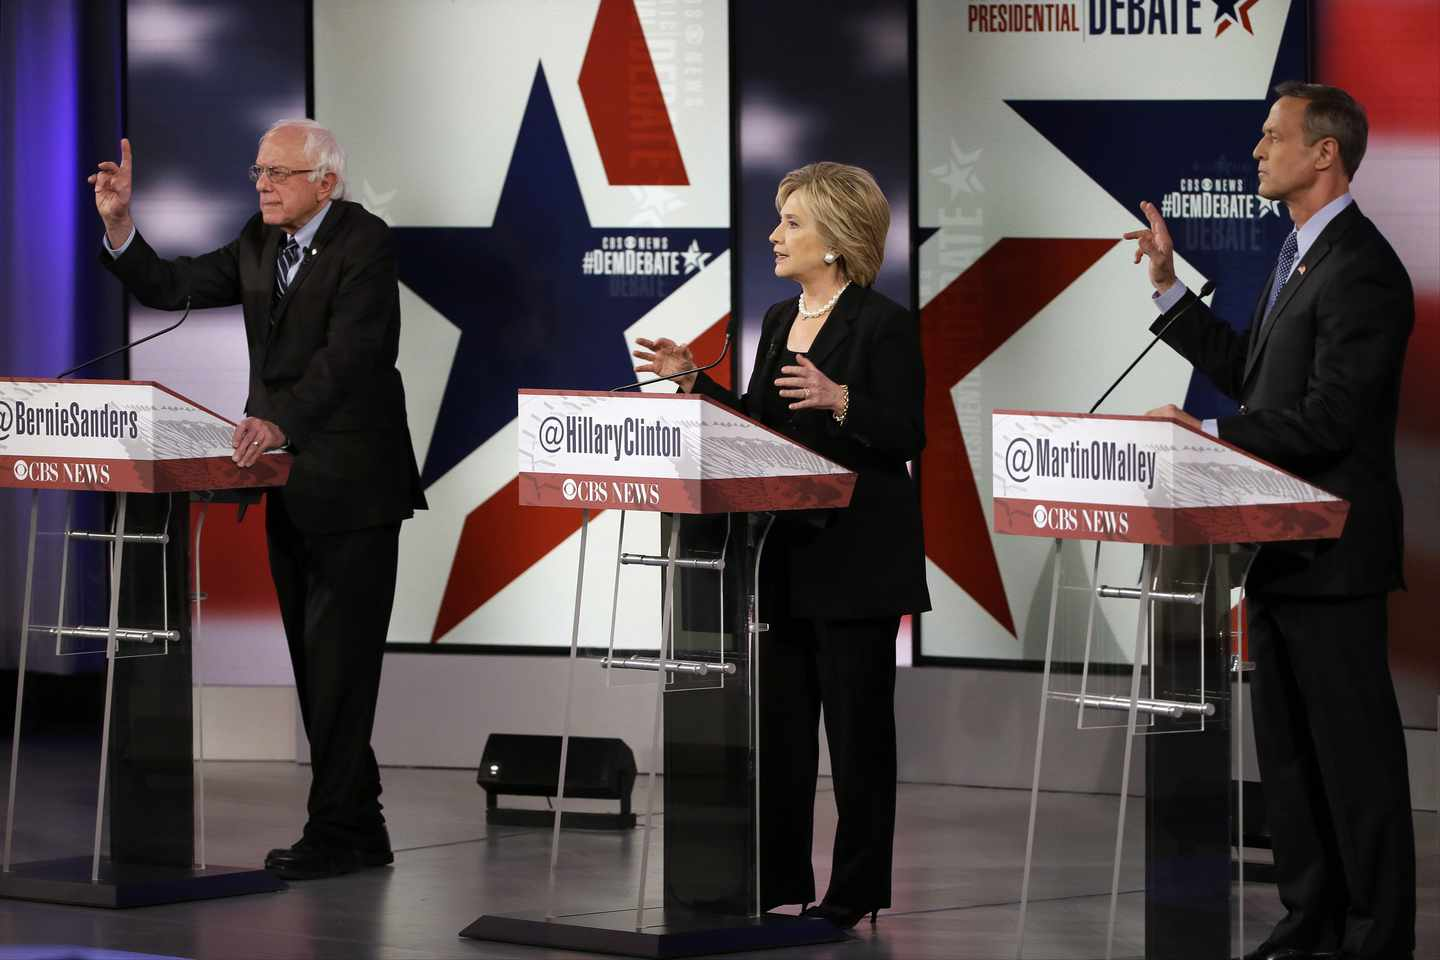 DNC Mulls Higher Bar to Qualify for Primary Debates